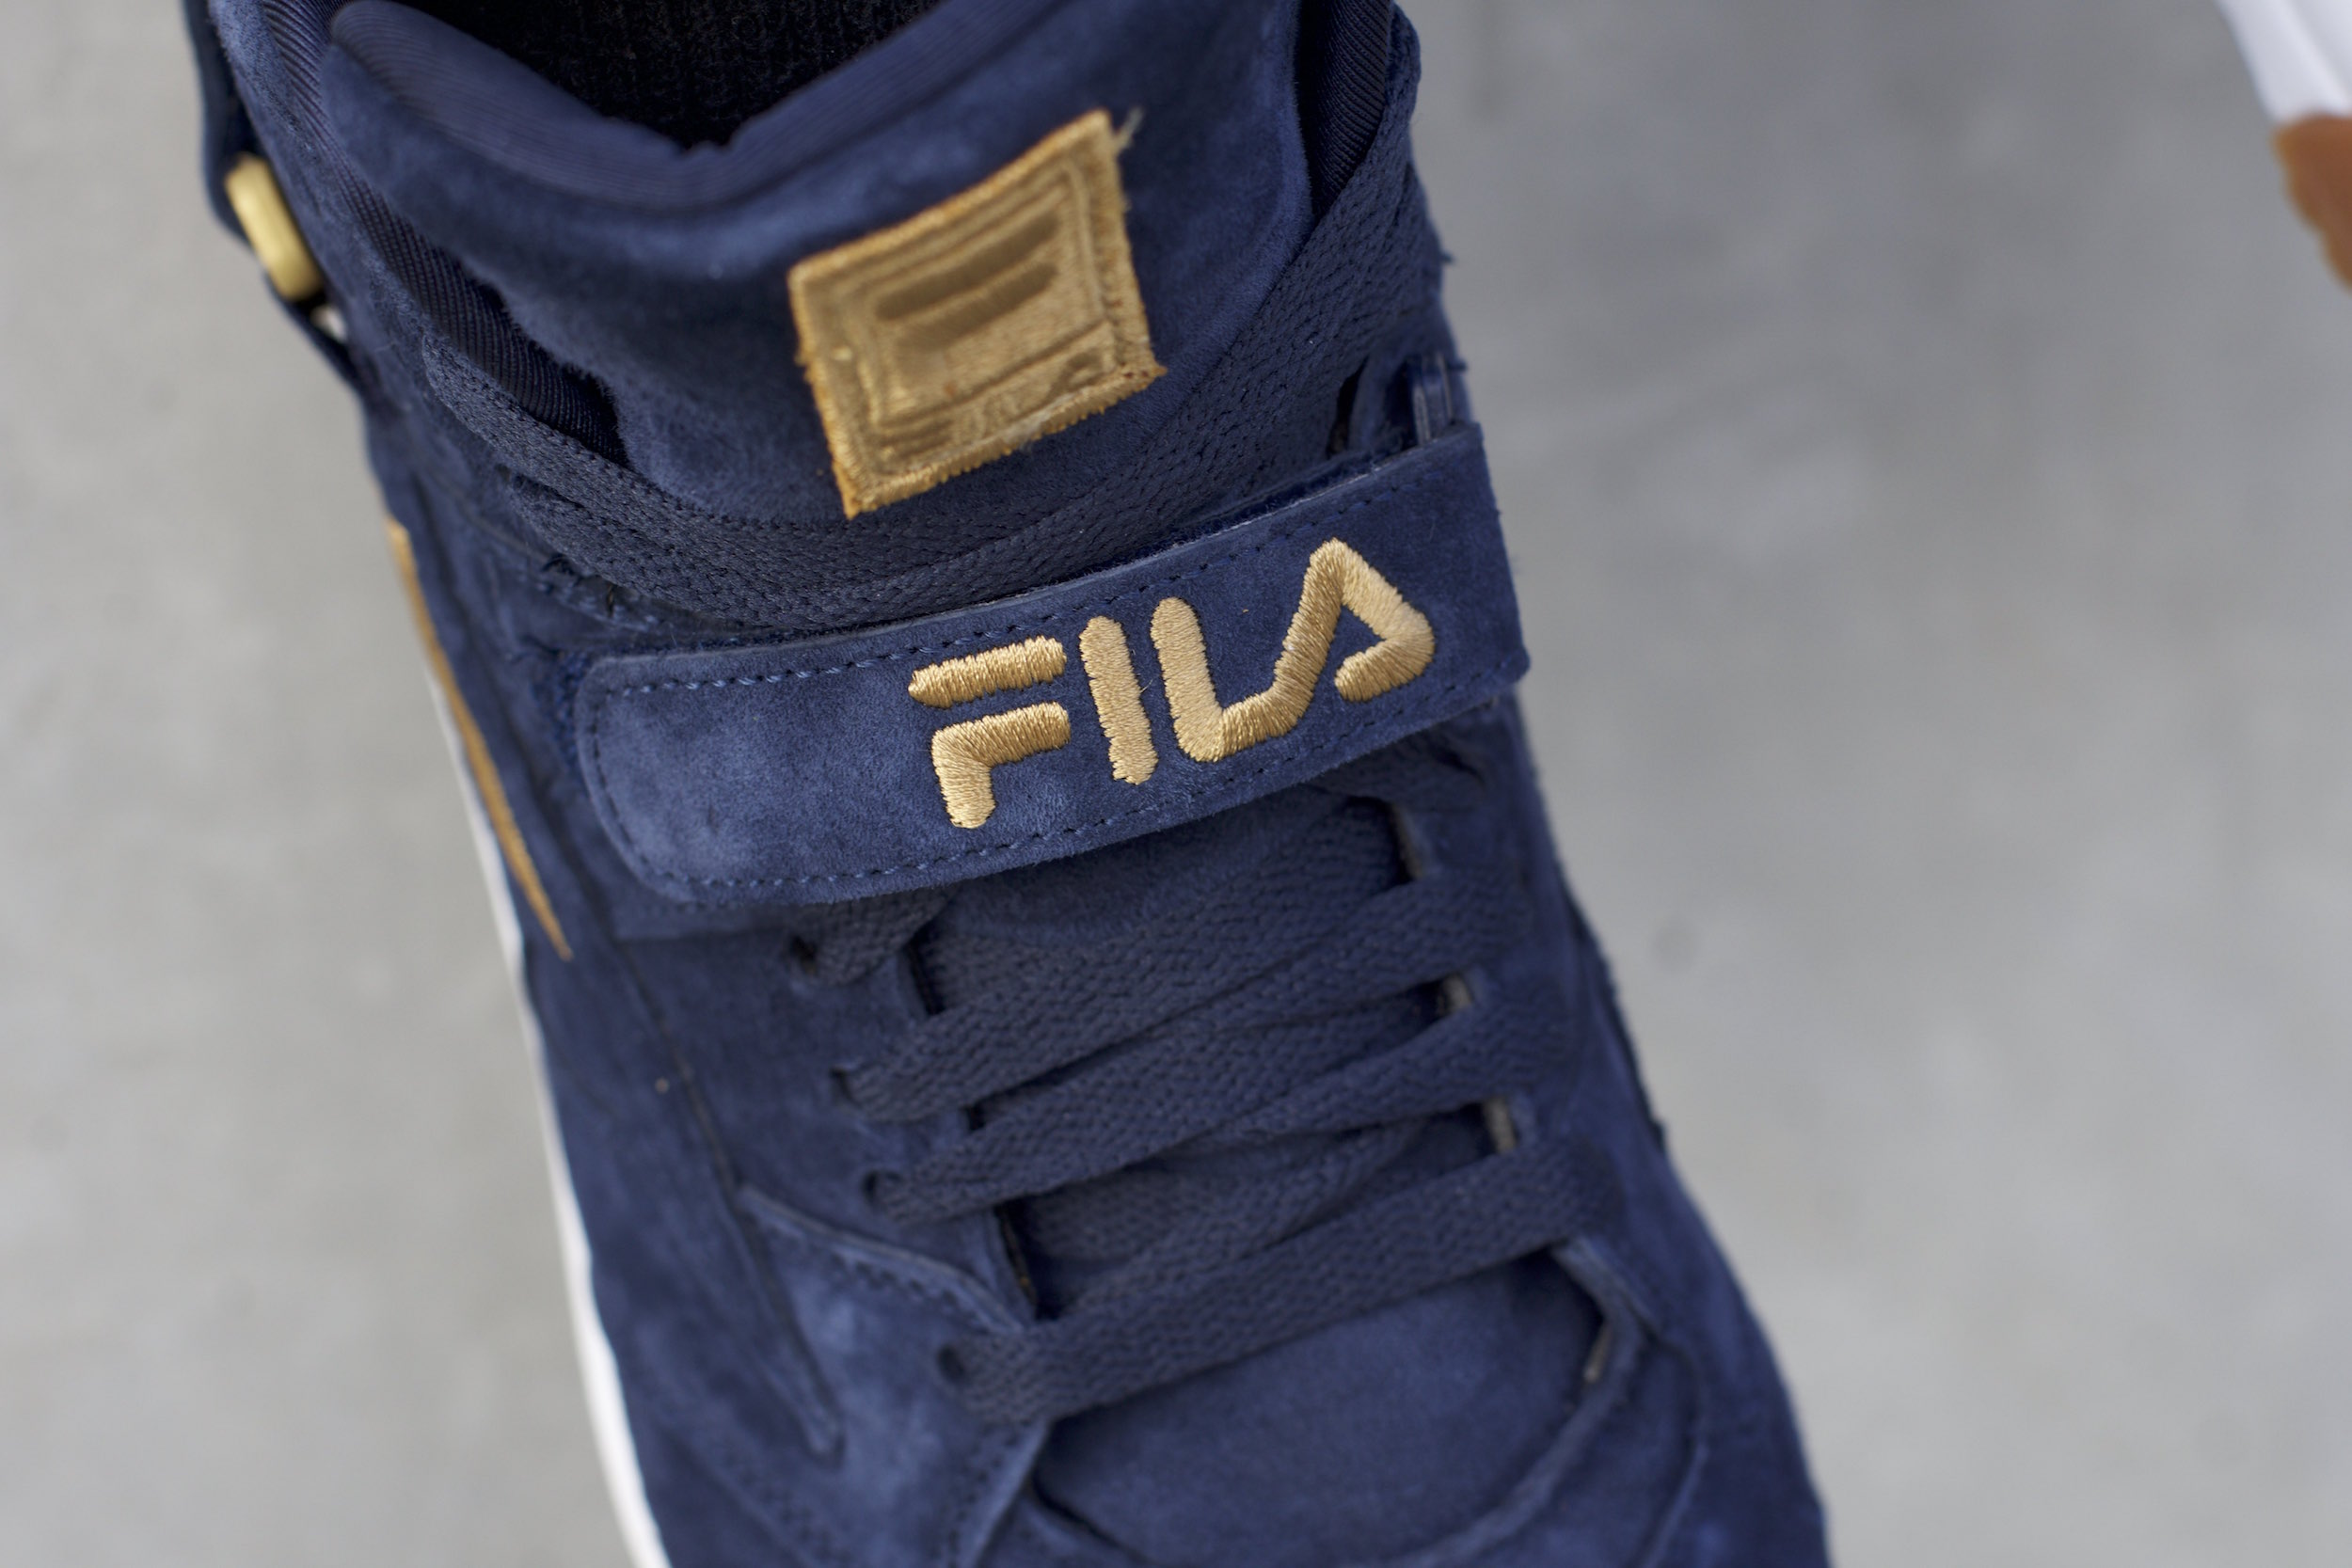 FILA Spoiler Royal Beginnings 7